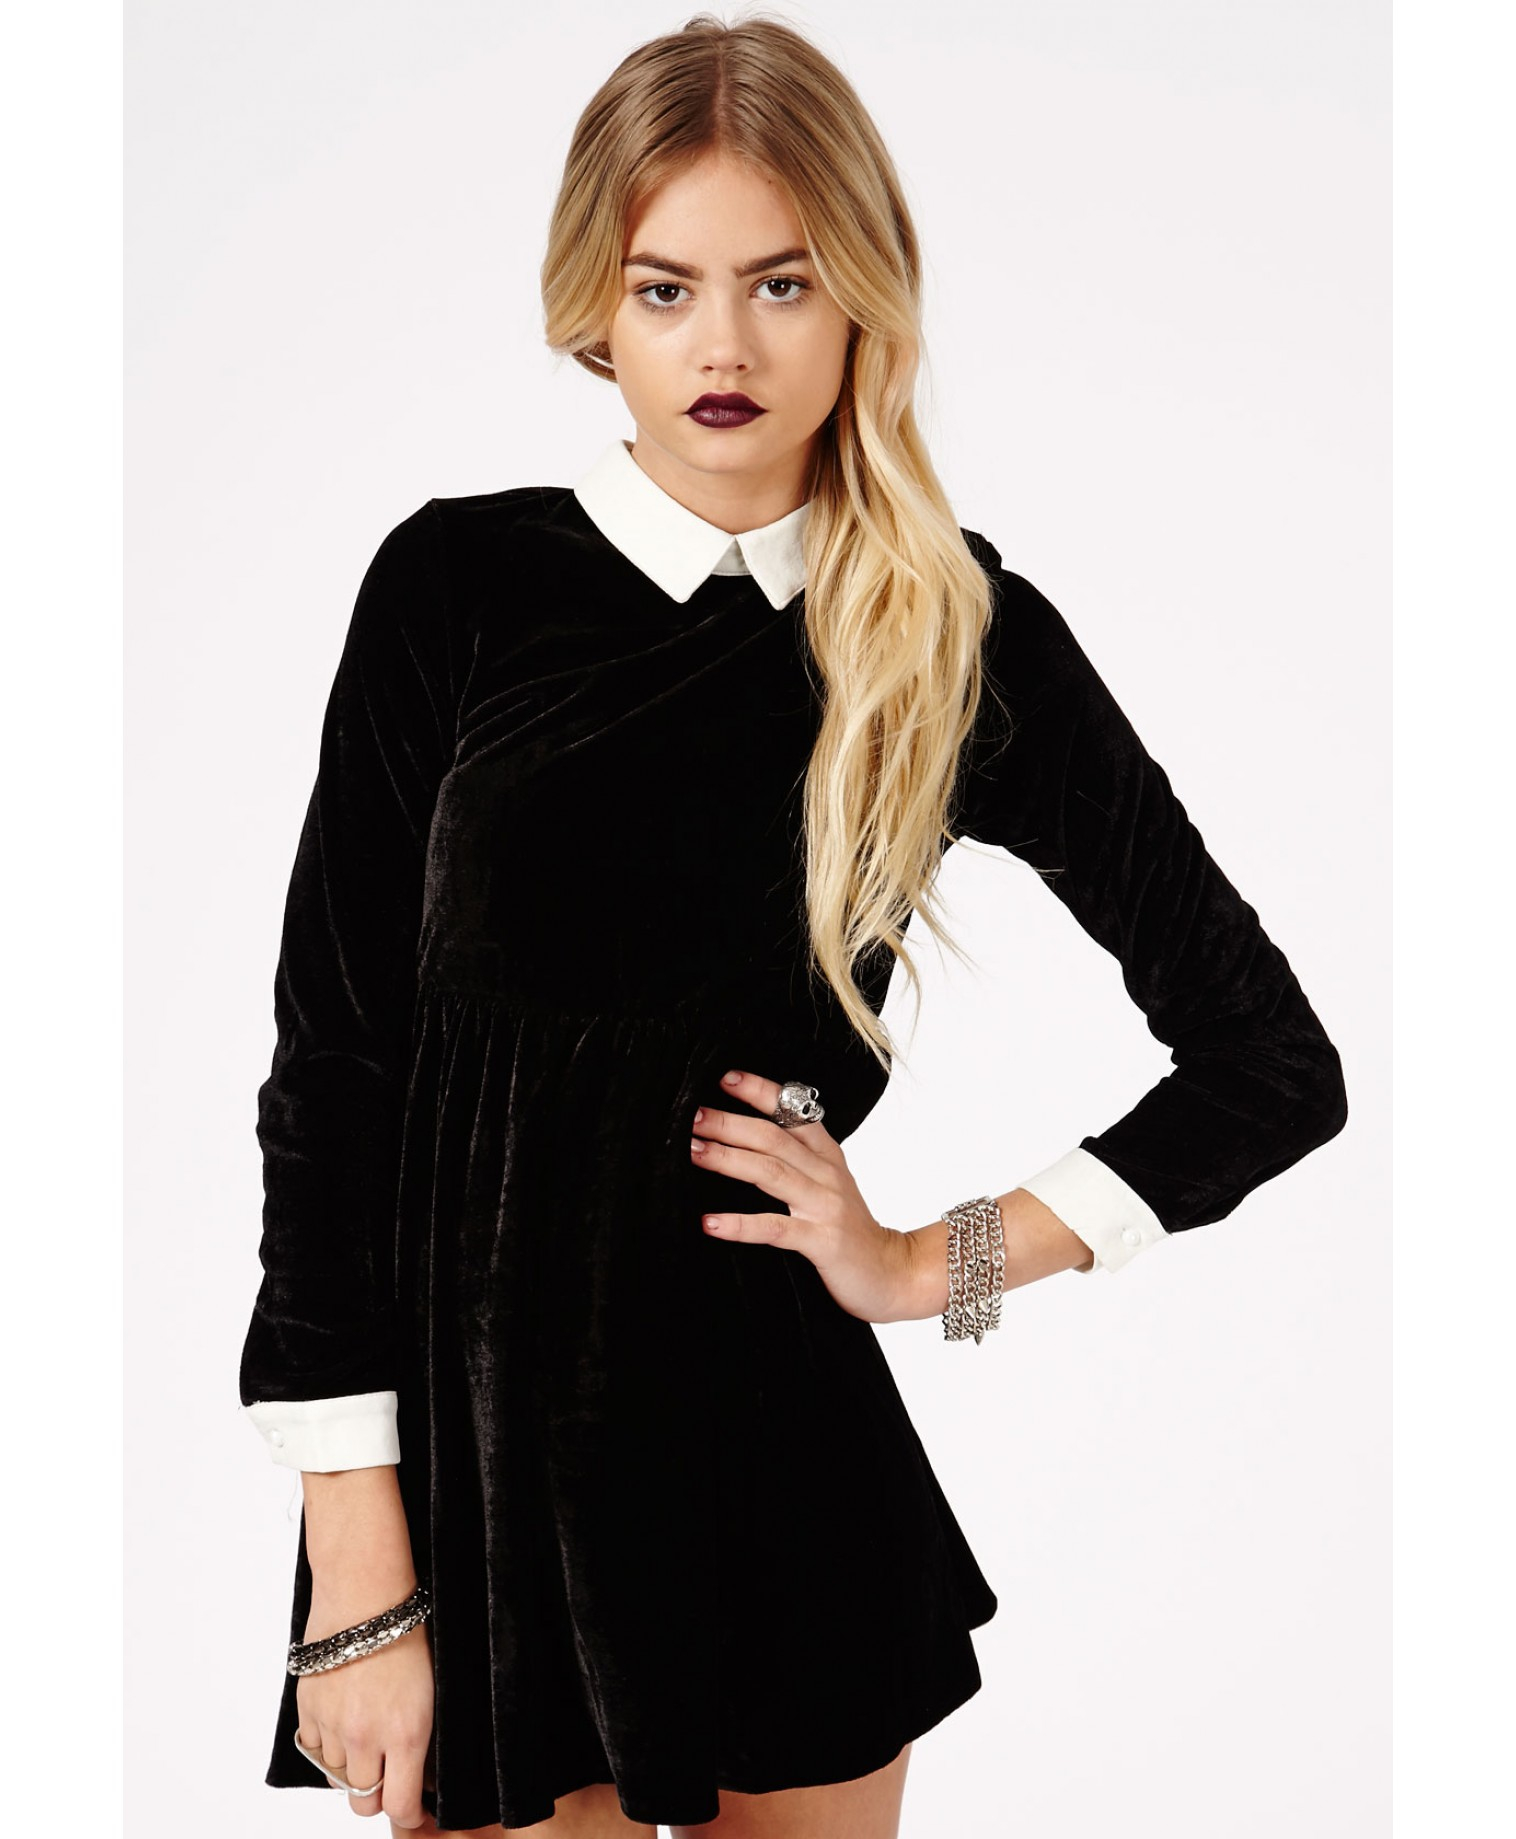 Missguided Cassida Velvet Contrast Collar and Cuffs Skater Dress in ... 8f5d83fdf